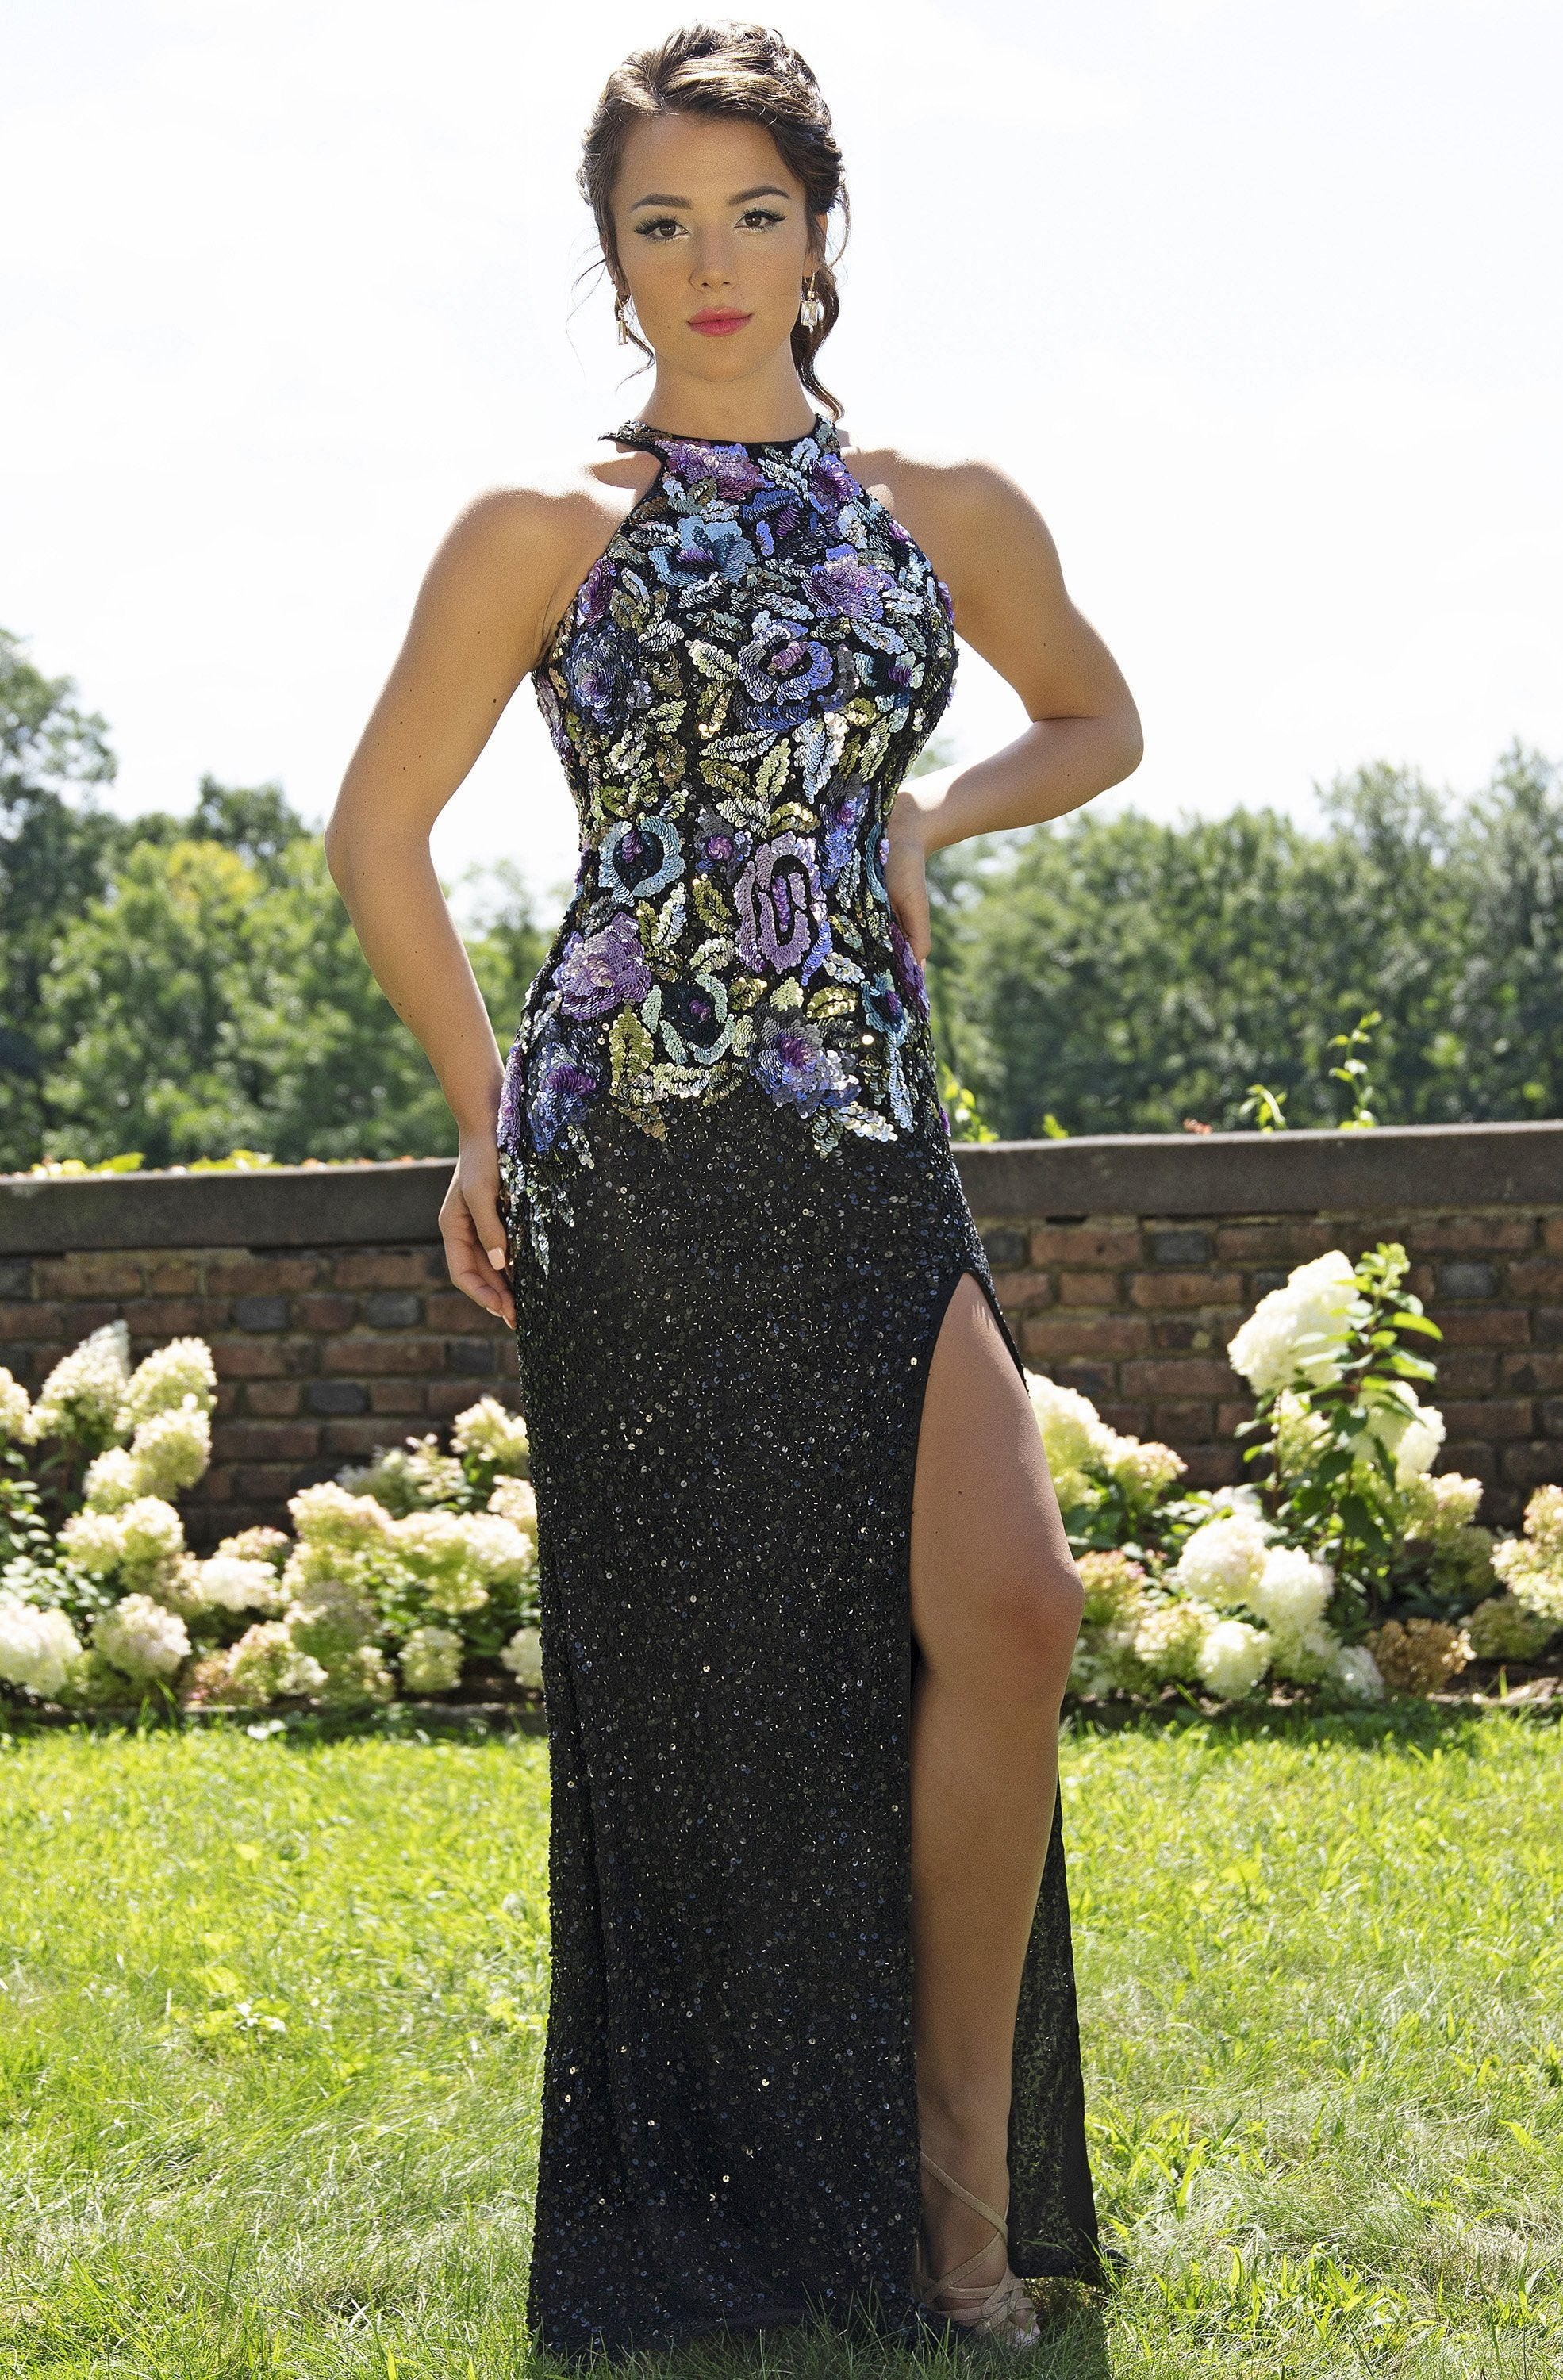 Primavera Couture - 3240 Sequined Halter Sheath Dress With Train In Black and Multi-Color